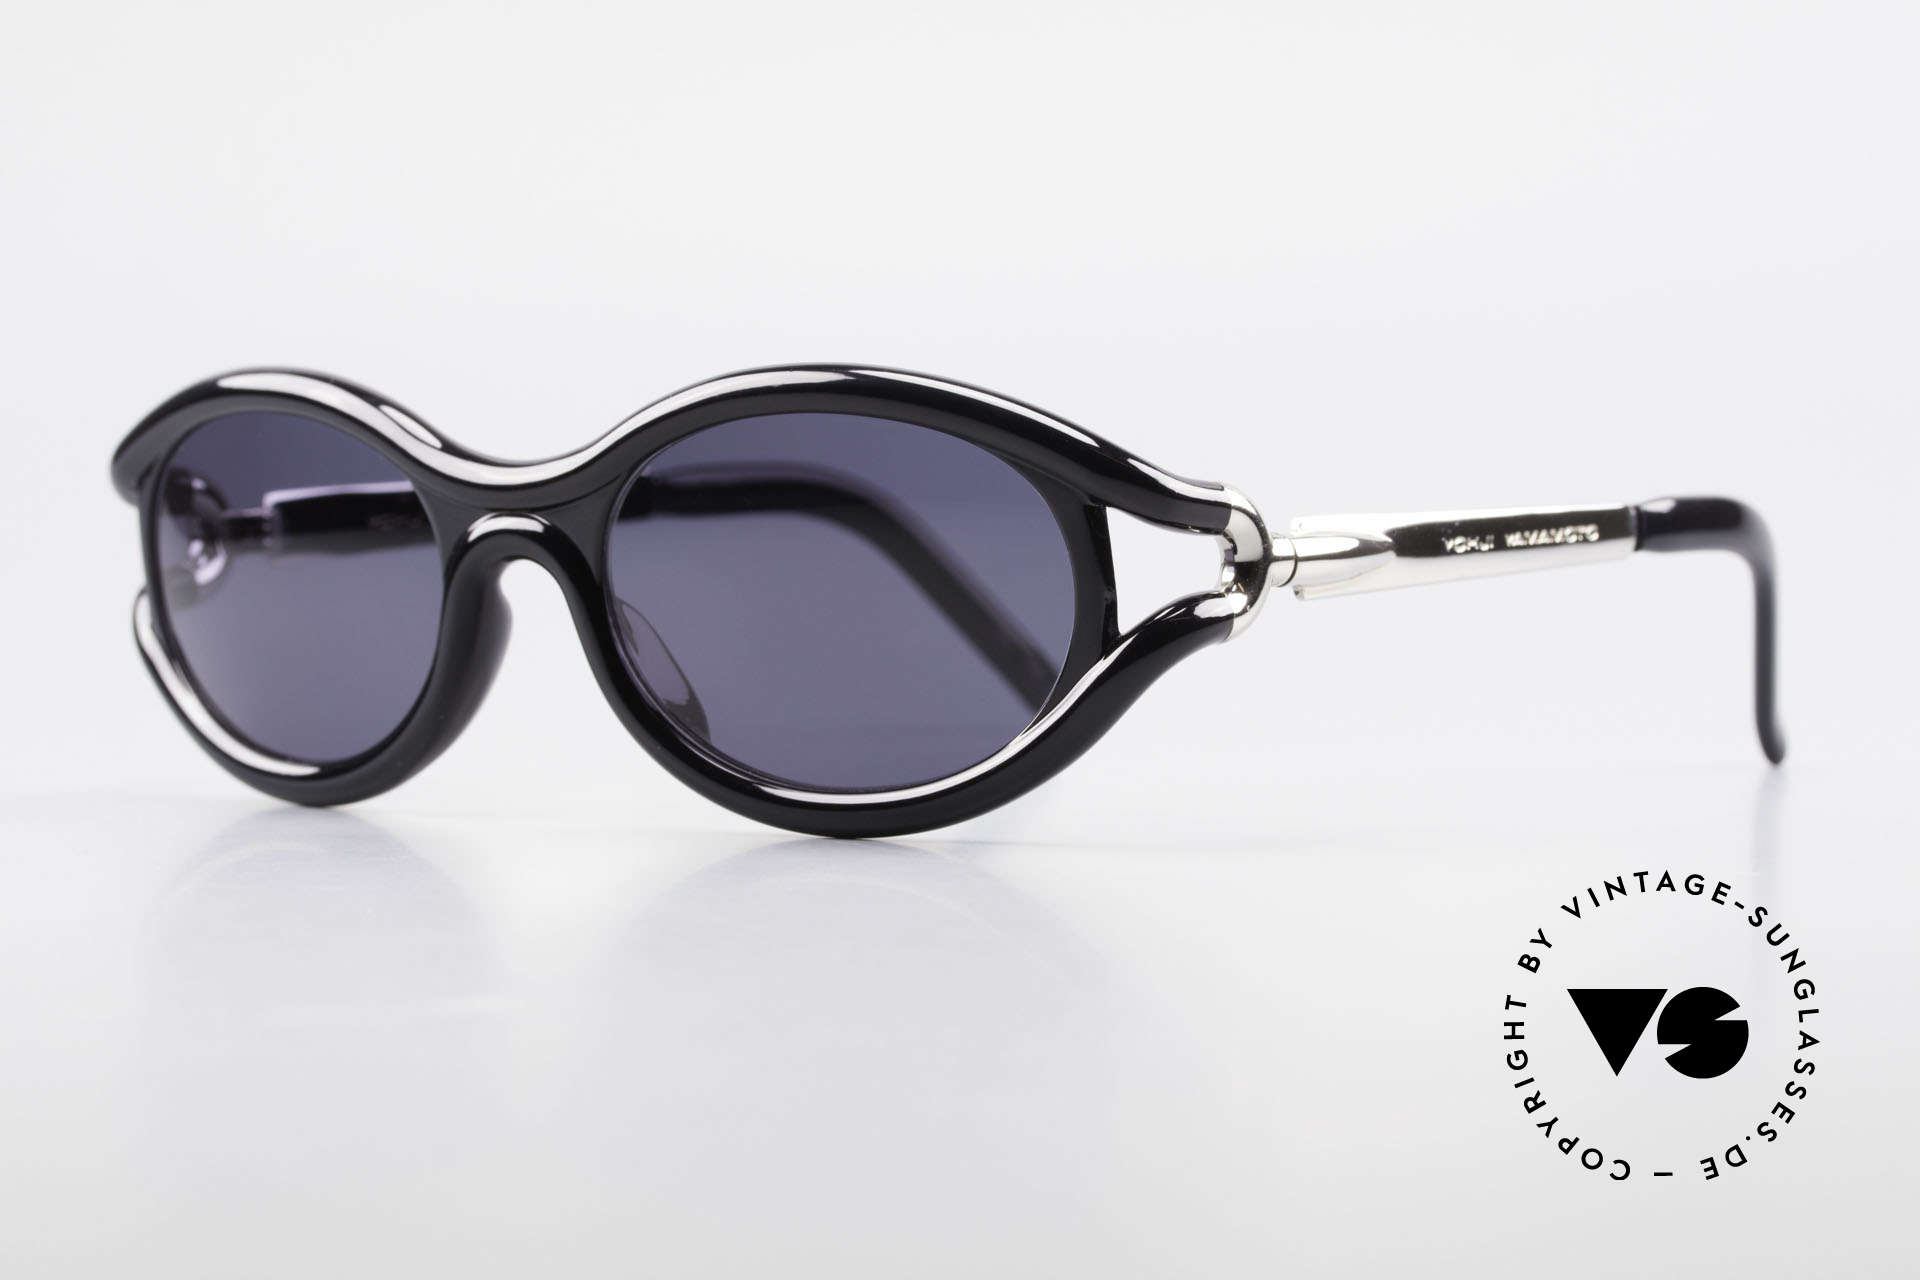 Yohji Yamamoto 52-5201 Designer Shades Made in Japan, outstanding materials and craftsmanship; made in Japan, Made for Men and Women